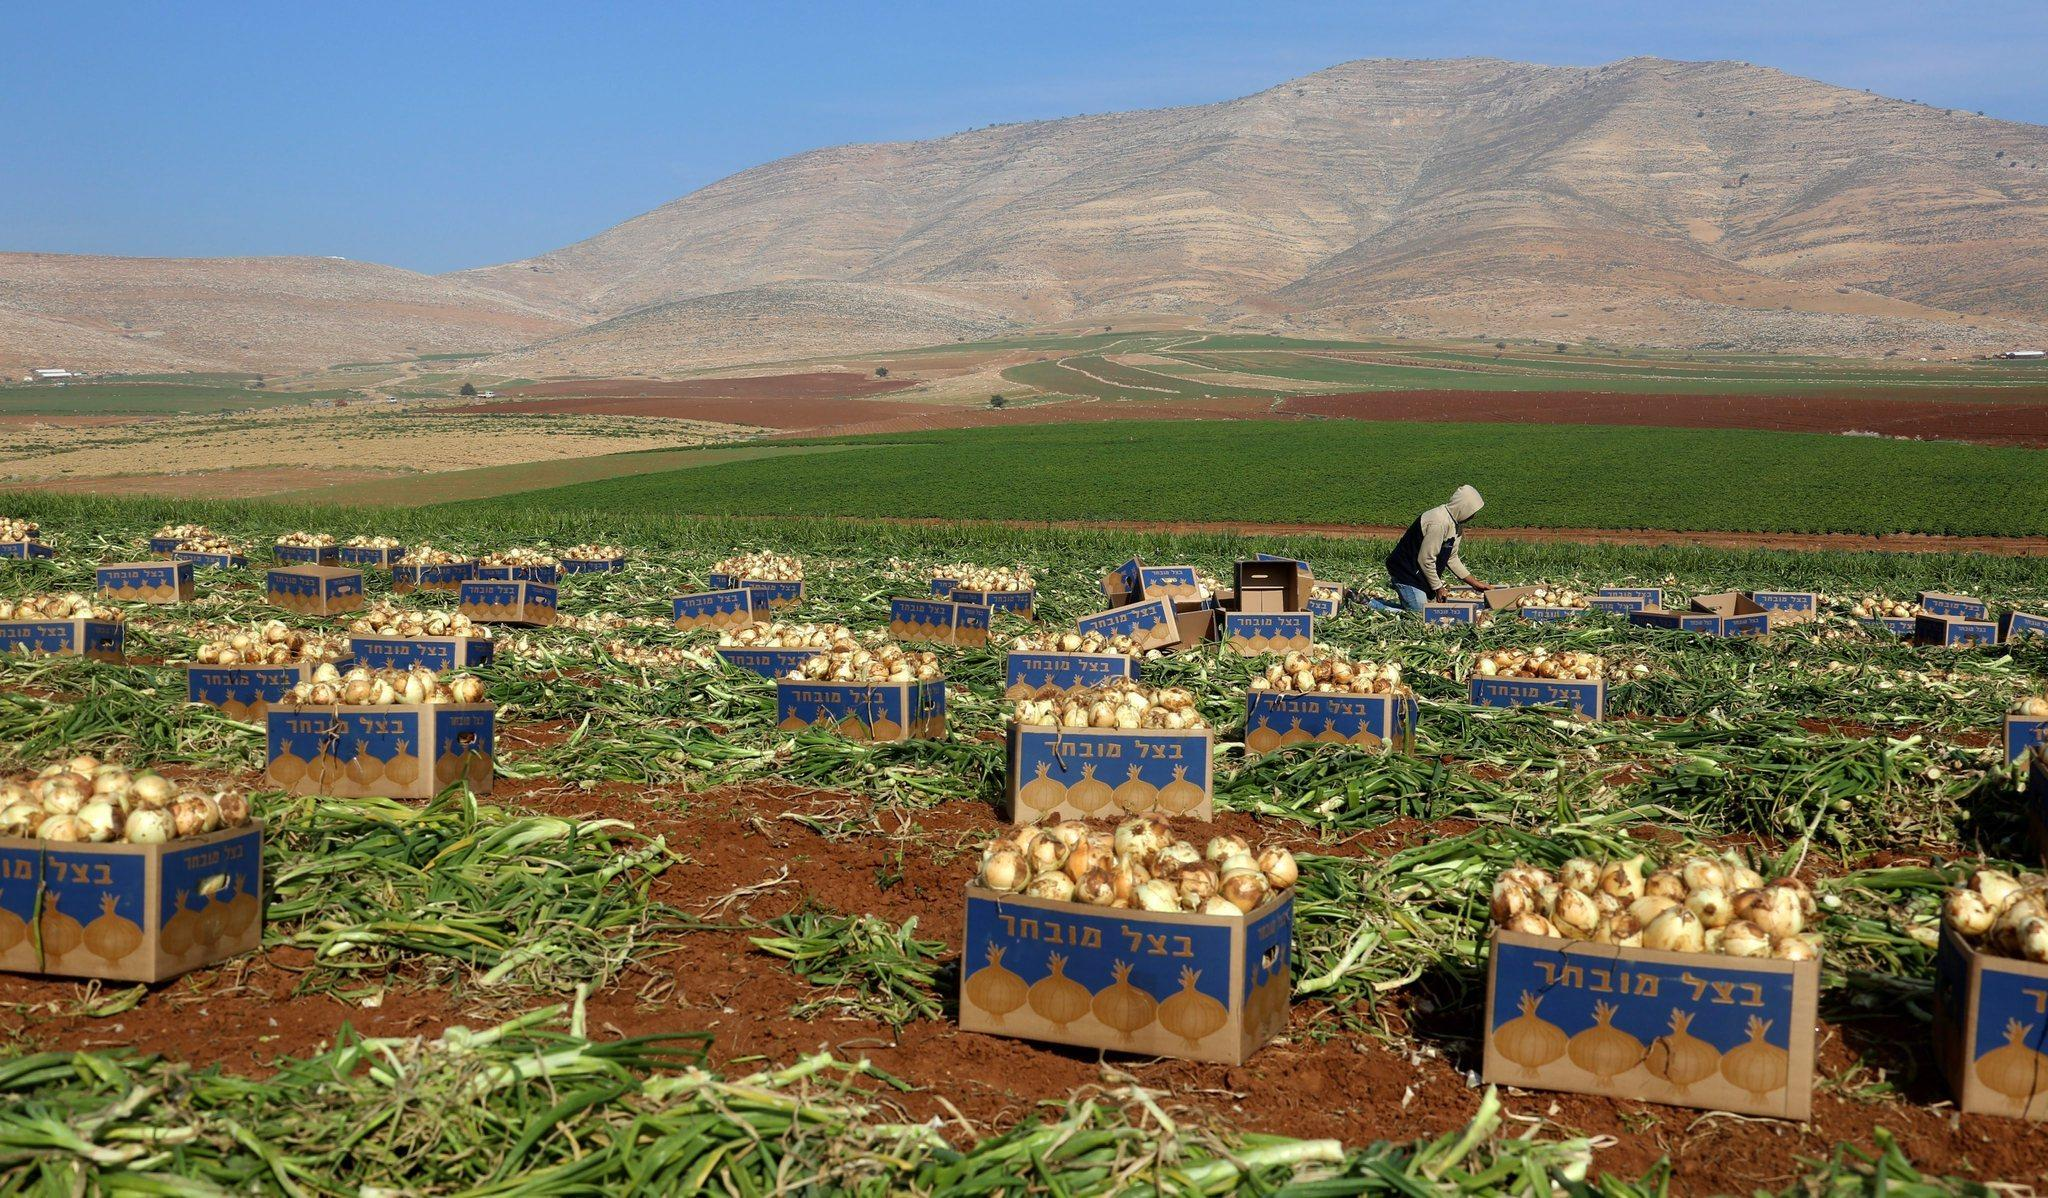 Palestinian workers harvest onions on the outskirts of Tubas in the West Bank. Agriculture is vital to the economy of the West Bank and Gaza, with farmers typically distributing fruits and vegetables through low-cost daily markets.